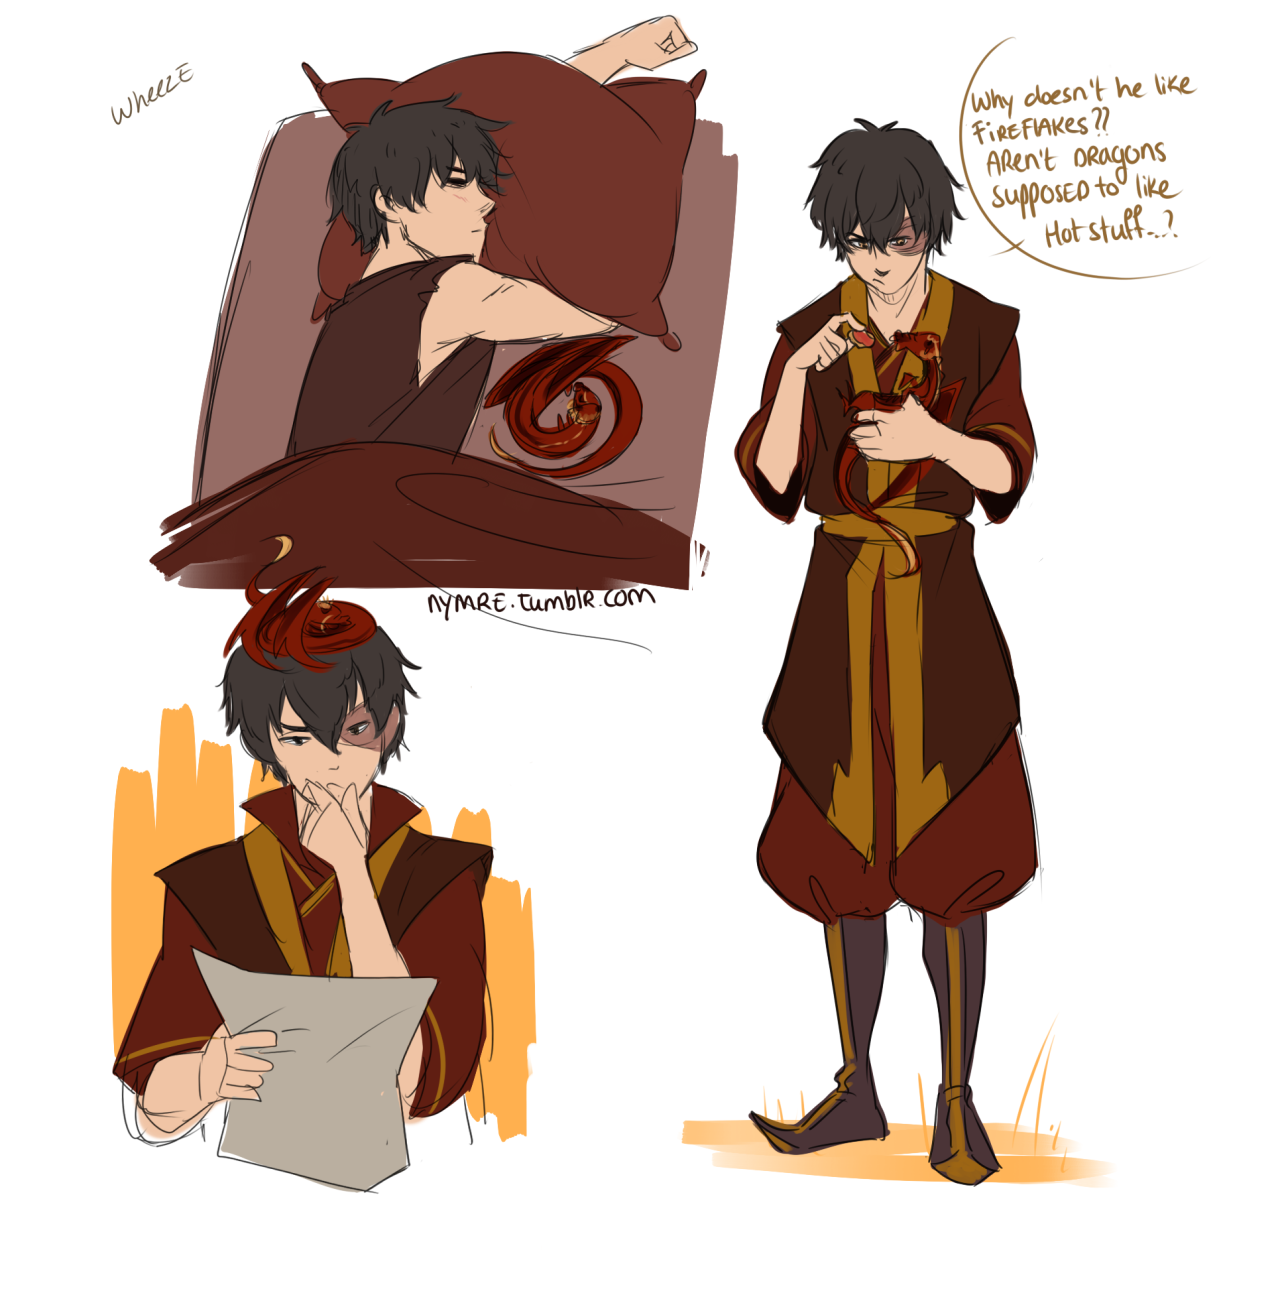 Avatar Airbender: Zuko The Dragon-Mom